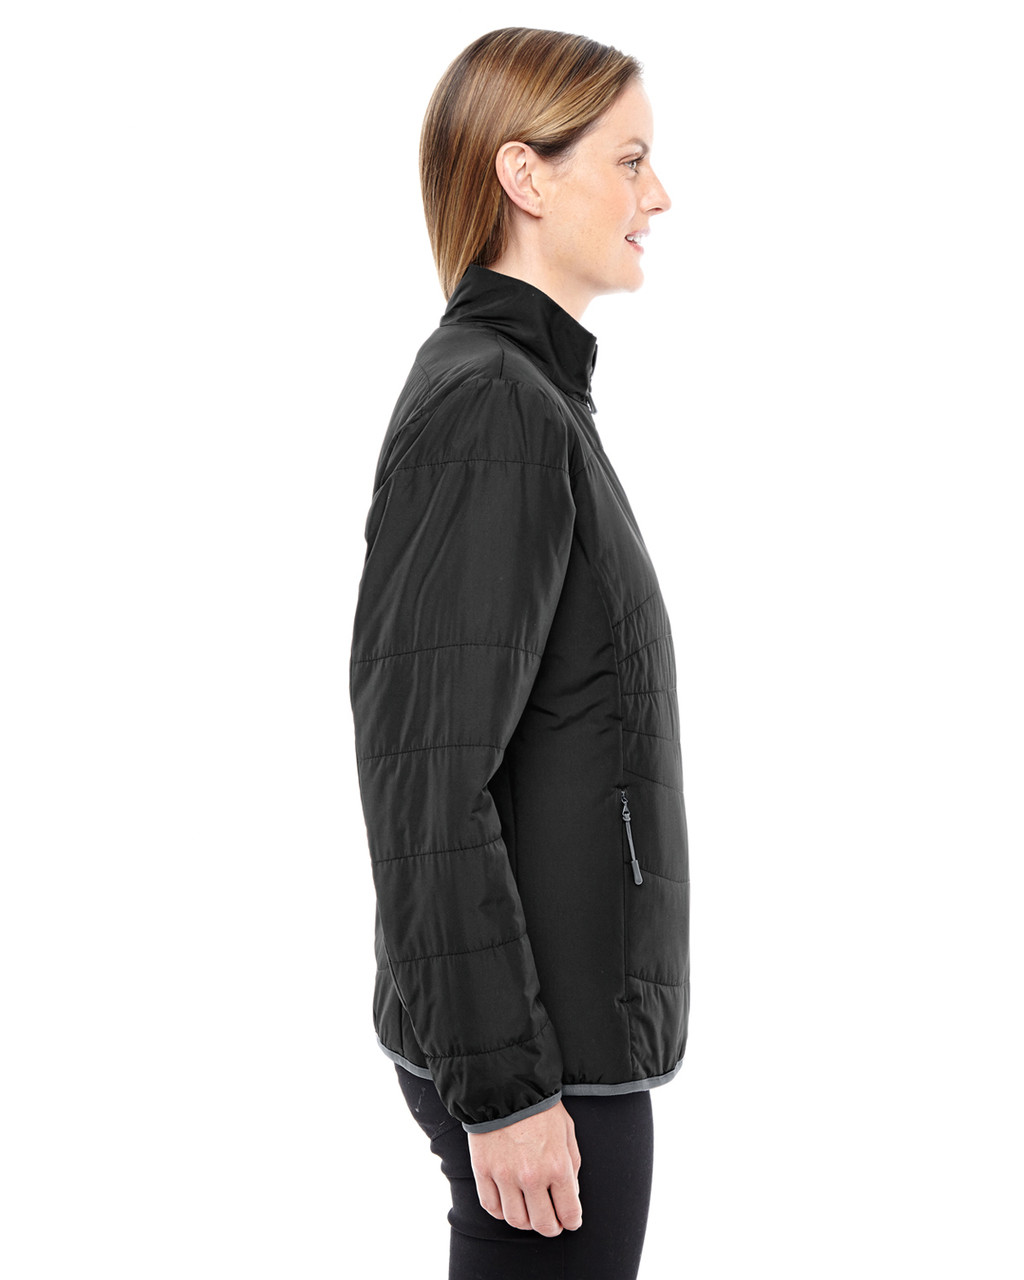 Black/Graphite - side 78231 North End Resolve Interactive Insulated Packable Jacket | Blankclothing.ca